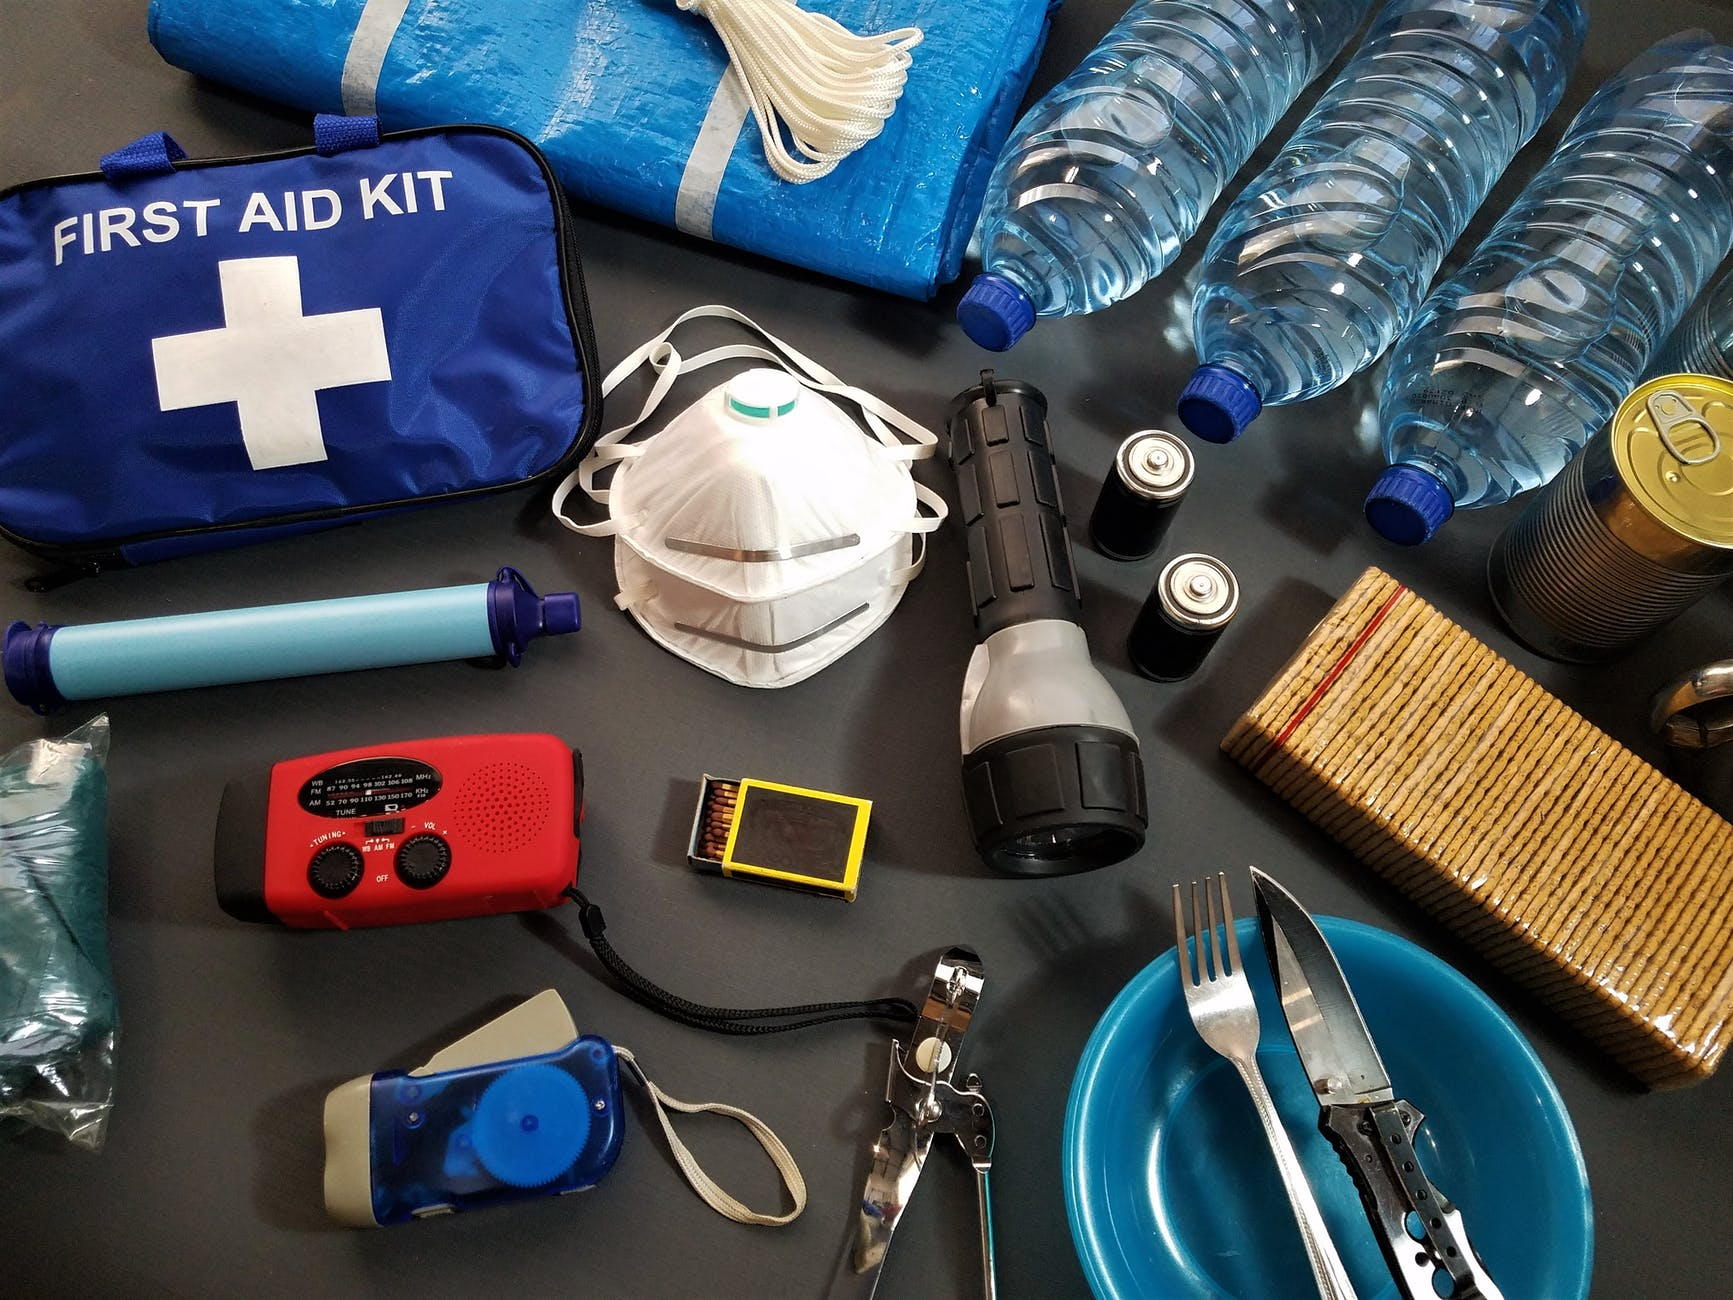 5 Things to Keep in Your Car in Case of Emergency